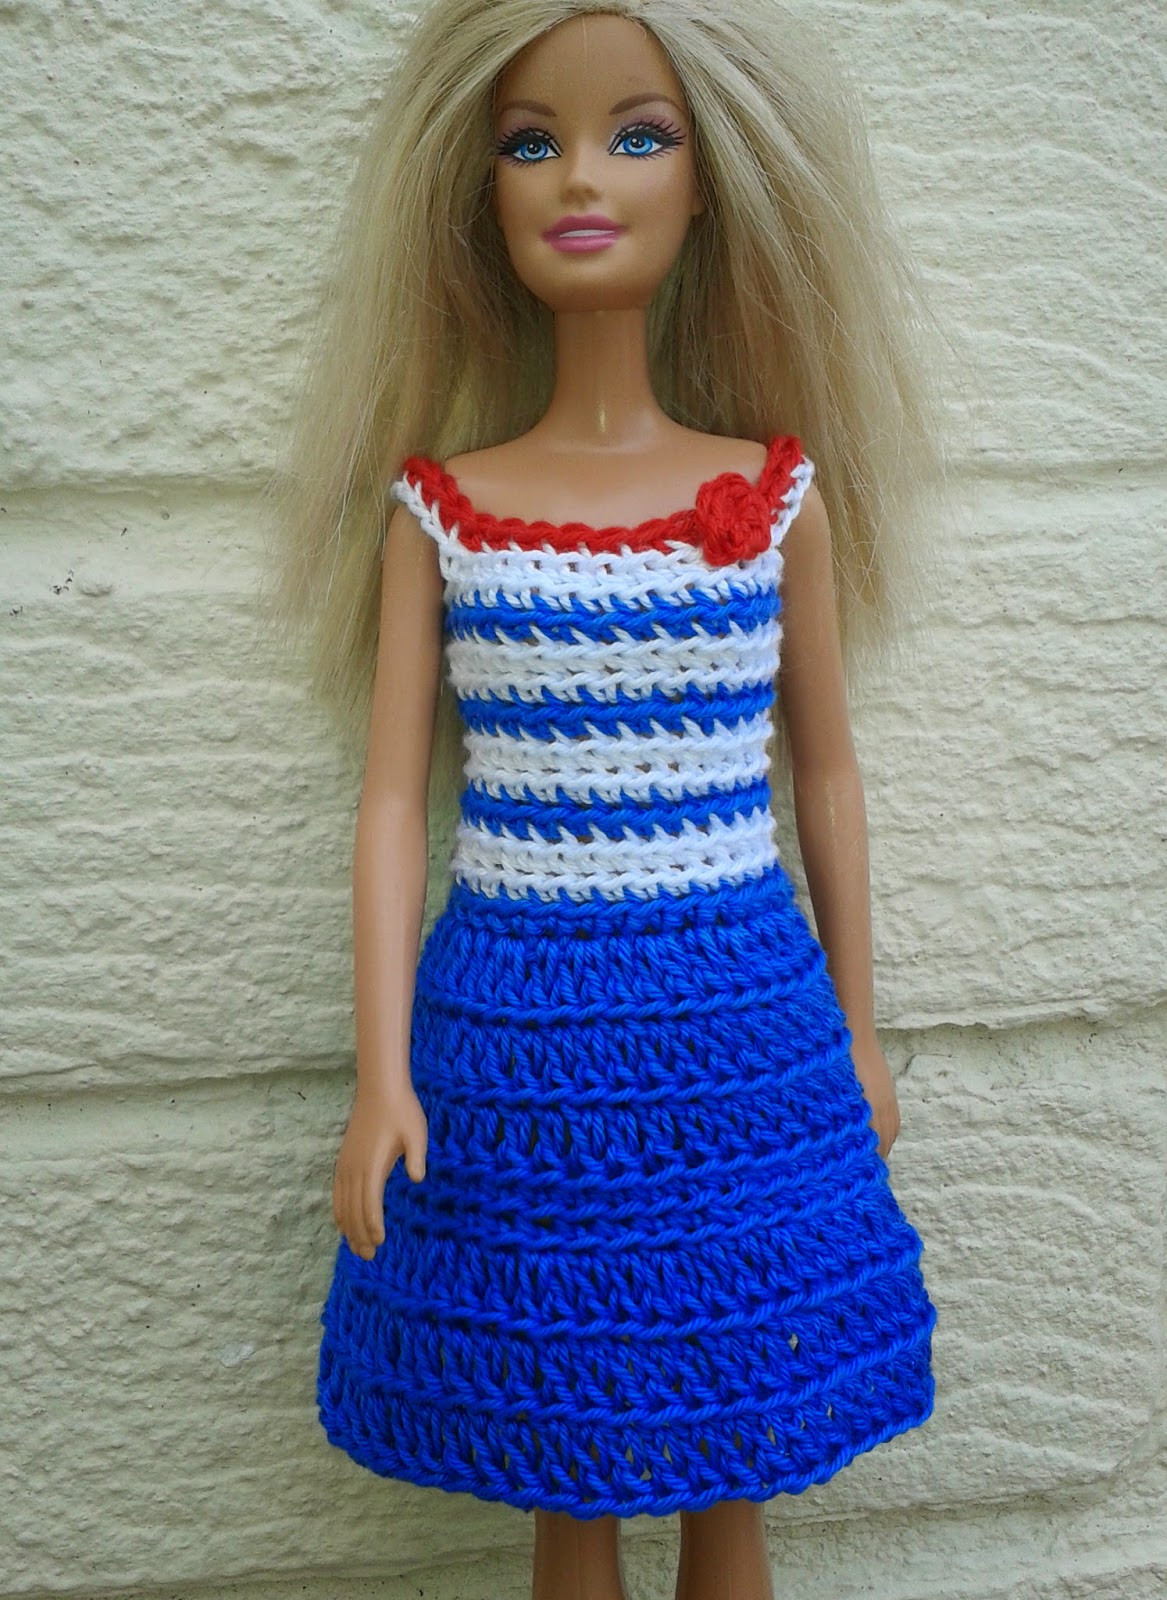 Inspirational Linmary Knits Barbie Crochet Nautical Dress Crochet Clothing Patterns Of Amazing 44 Pics Crochet Clothing Patterns